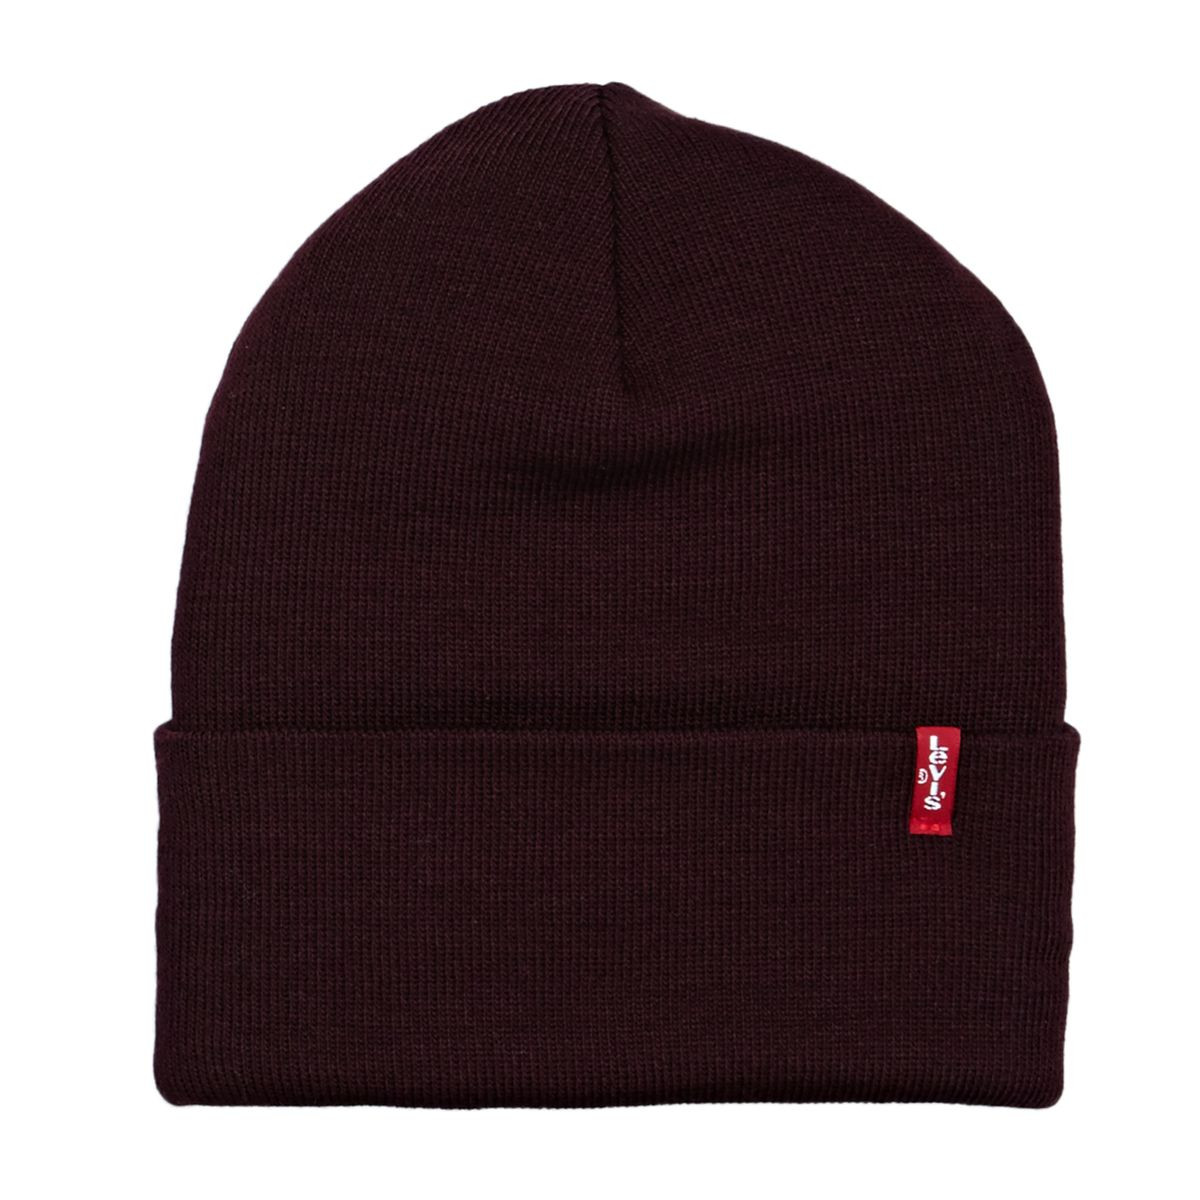 Awesome Levis Slouchy Red Tab Beanie 84 Red Slouchy Beanie Of New 50 Models Red Slouchy Beanie